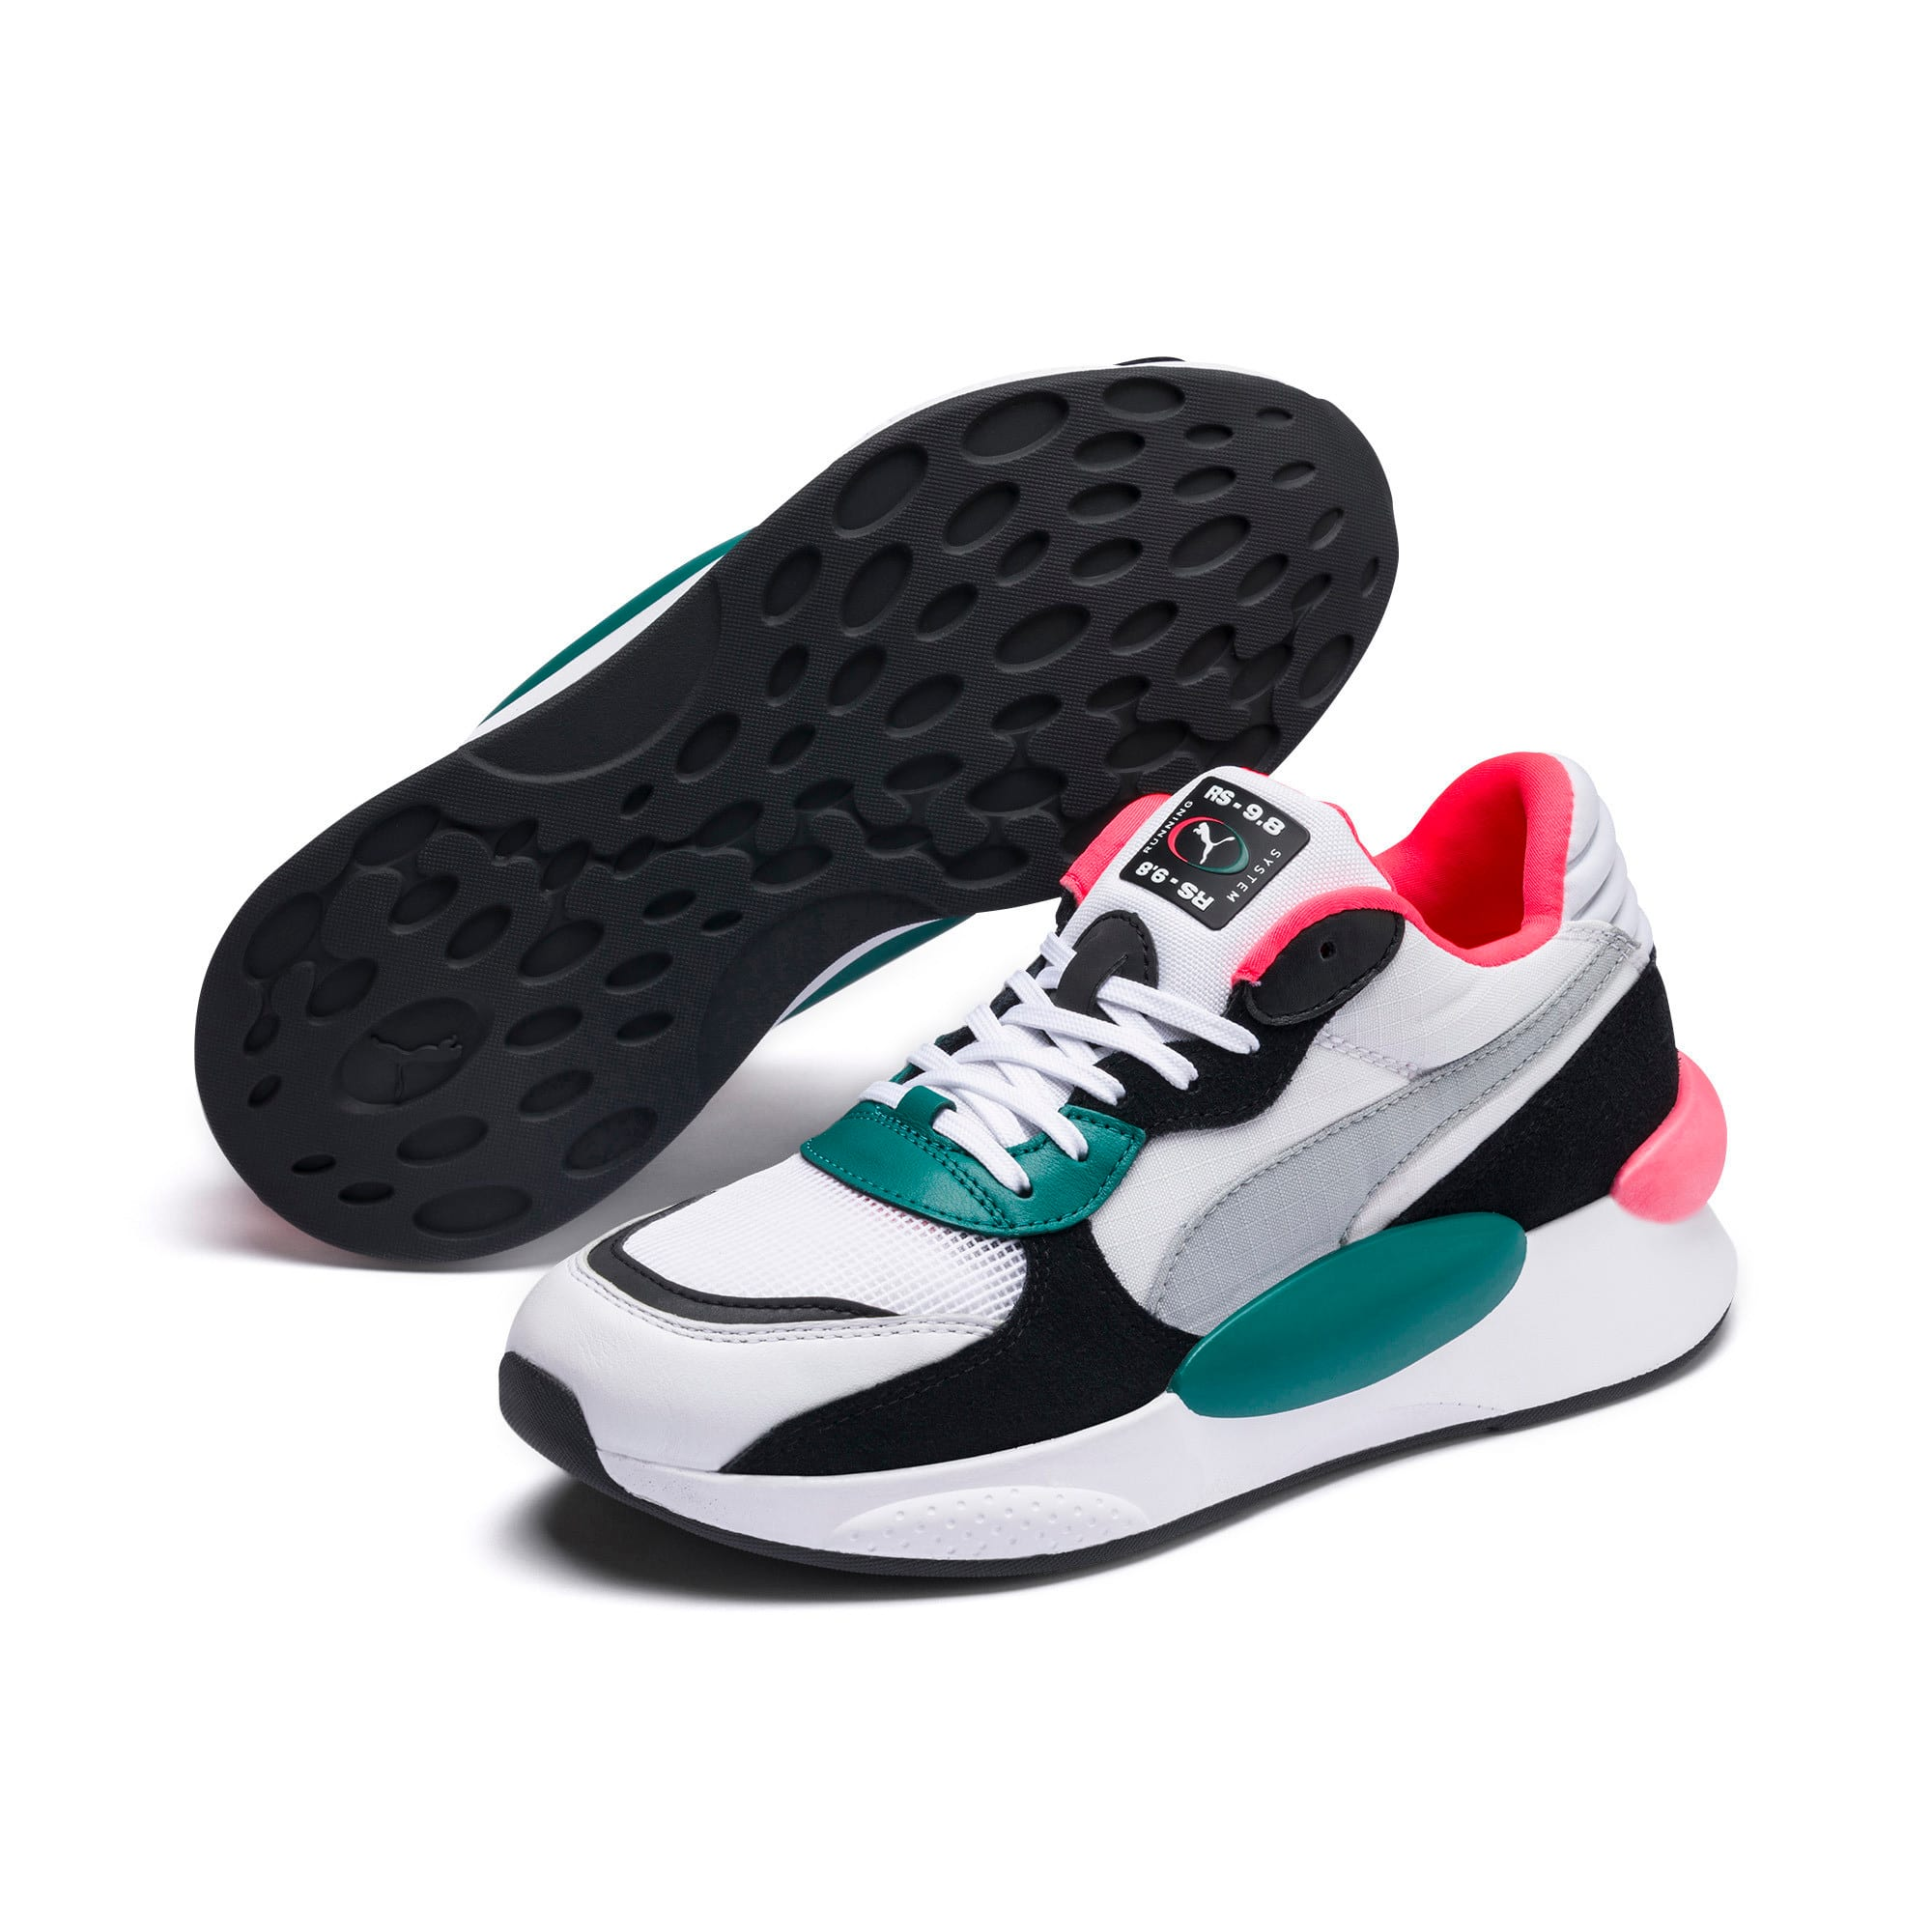 Thumbnail 2 van RS 9.8 Space sportschoenen, Puma White-blauwgroen, medium